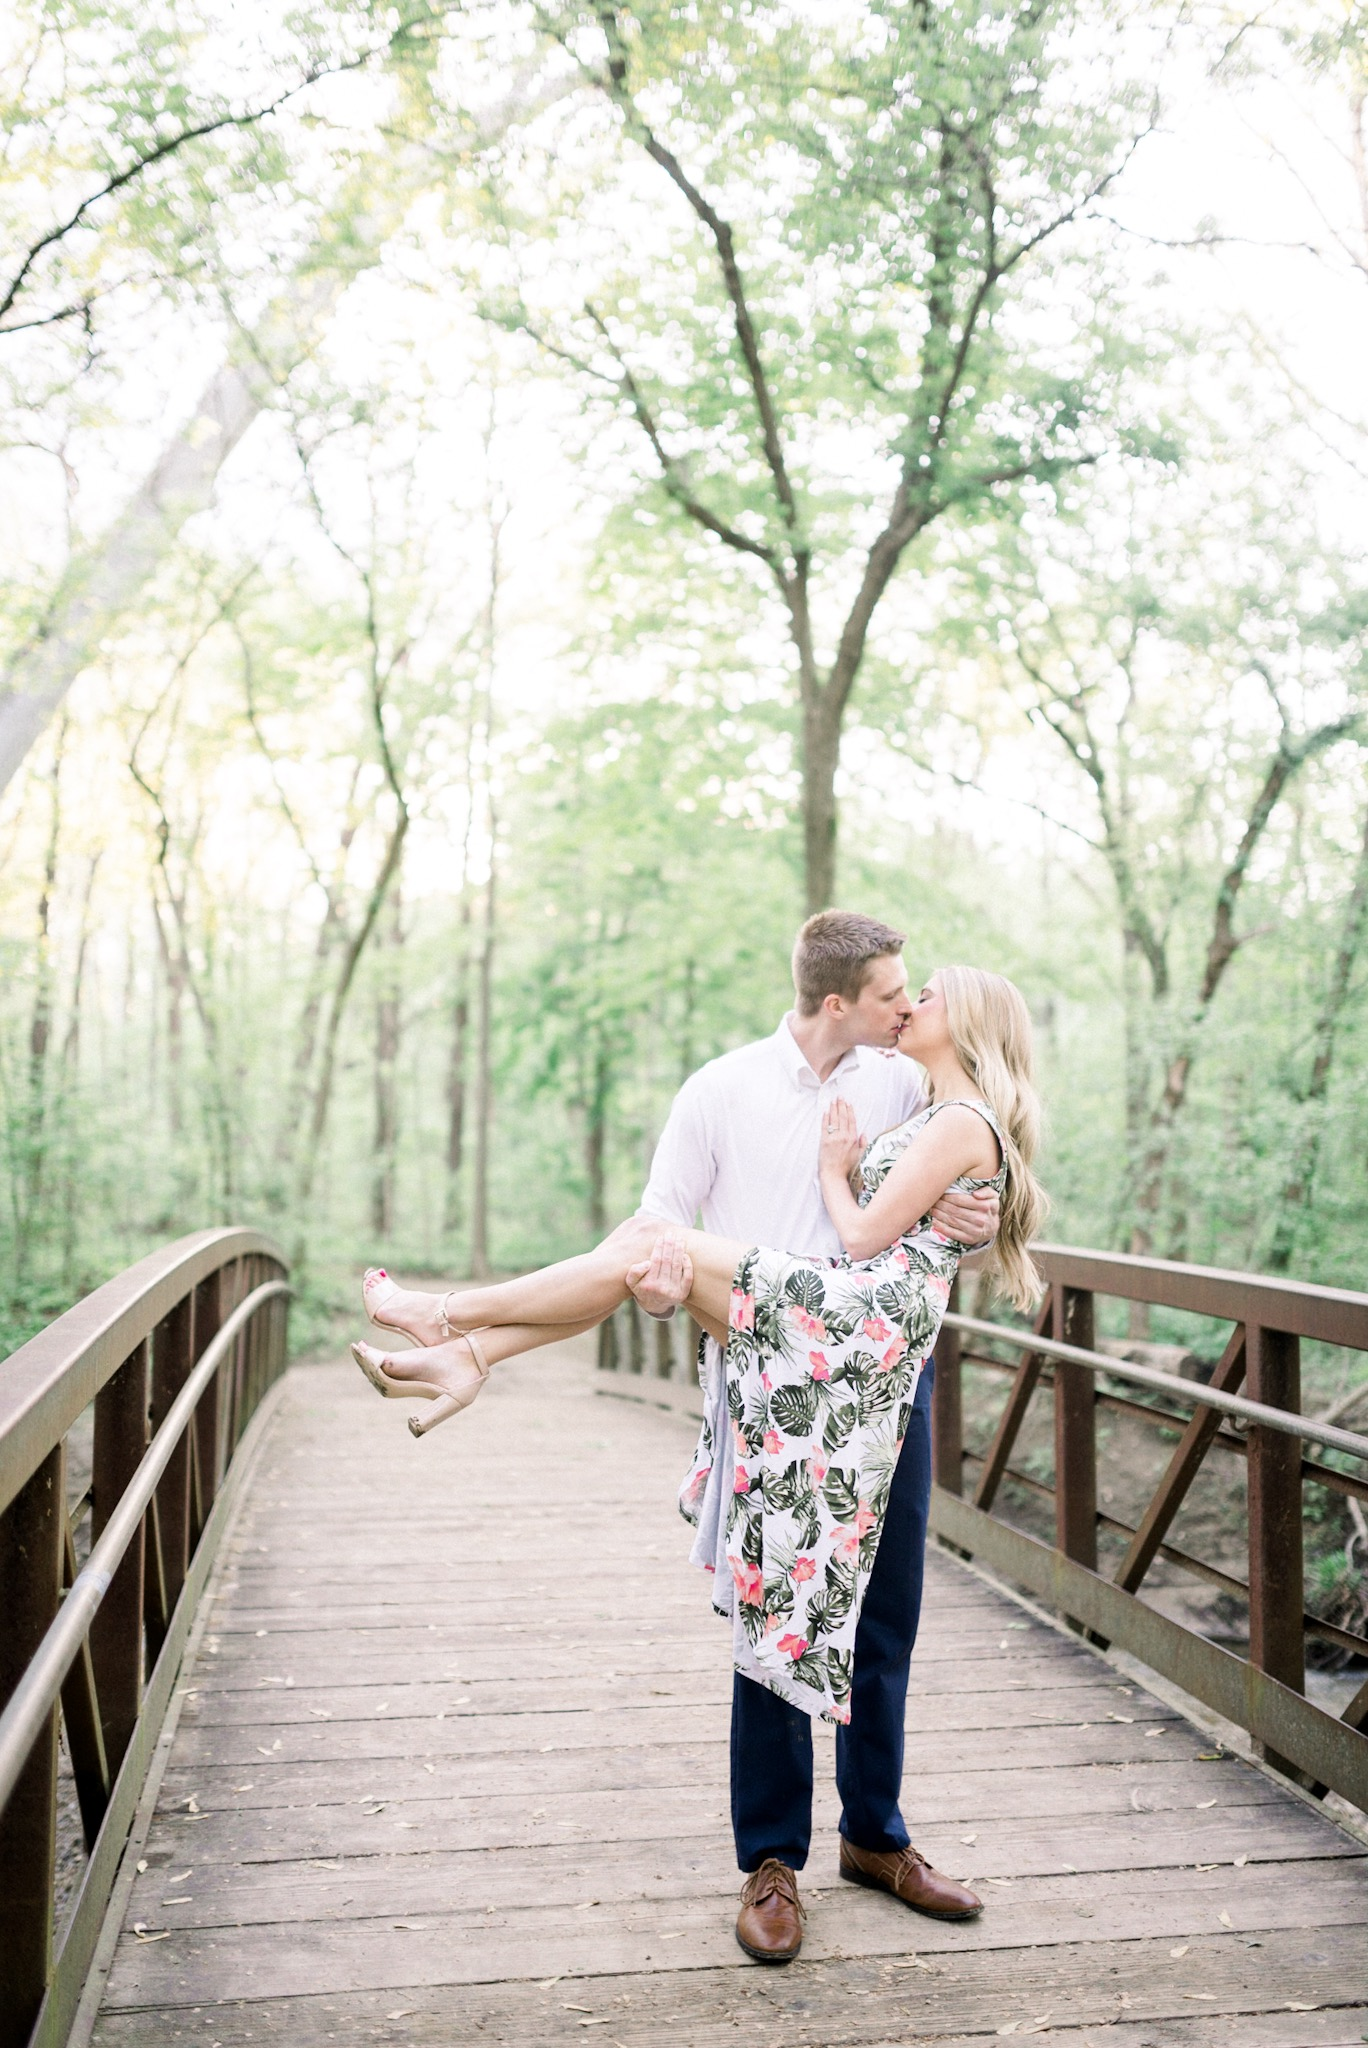 Jessica + Brayton | Romantic Engagement Photography by the Creek in Carmel Indiana | Indianapolis Wedding Photographers